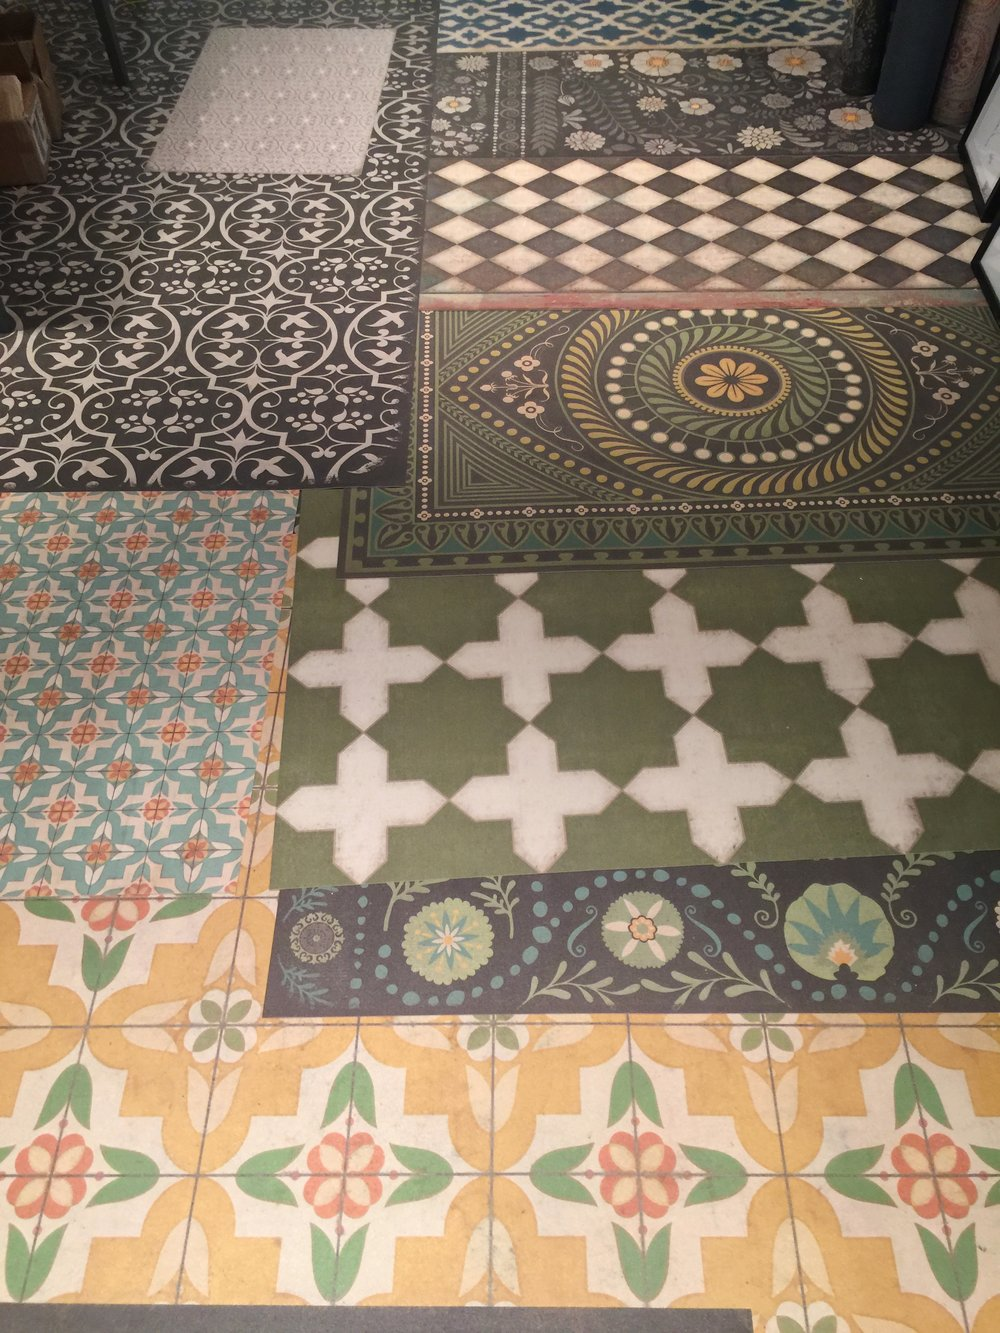 Spicher and Co. vinyl floor cloths